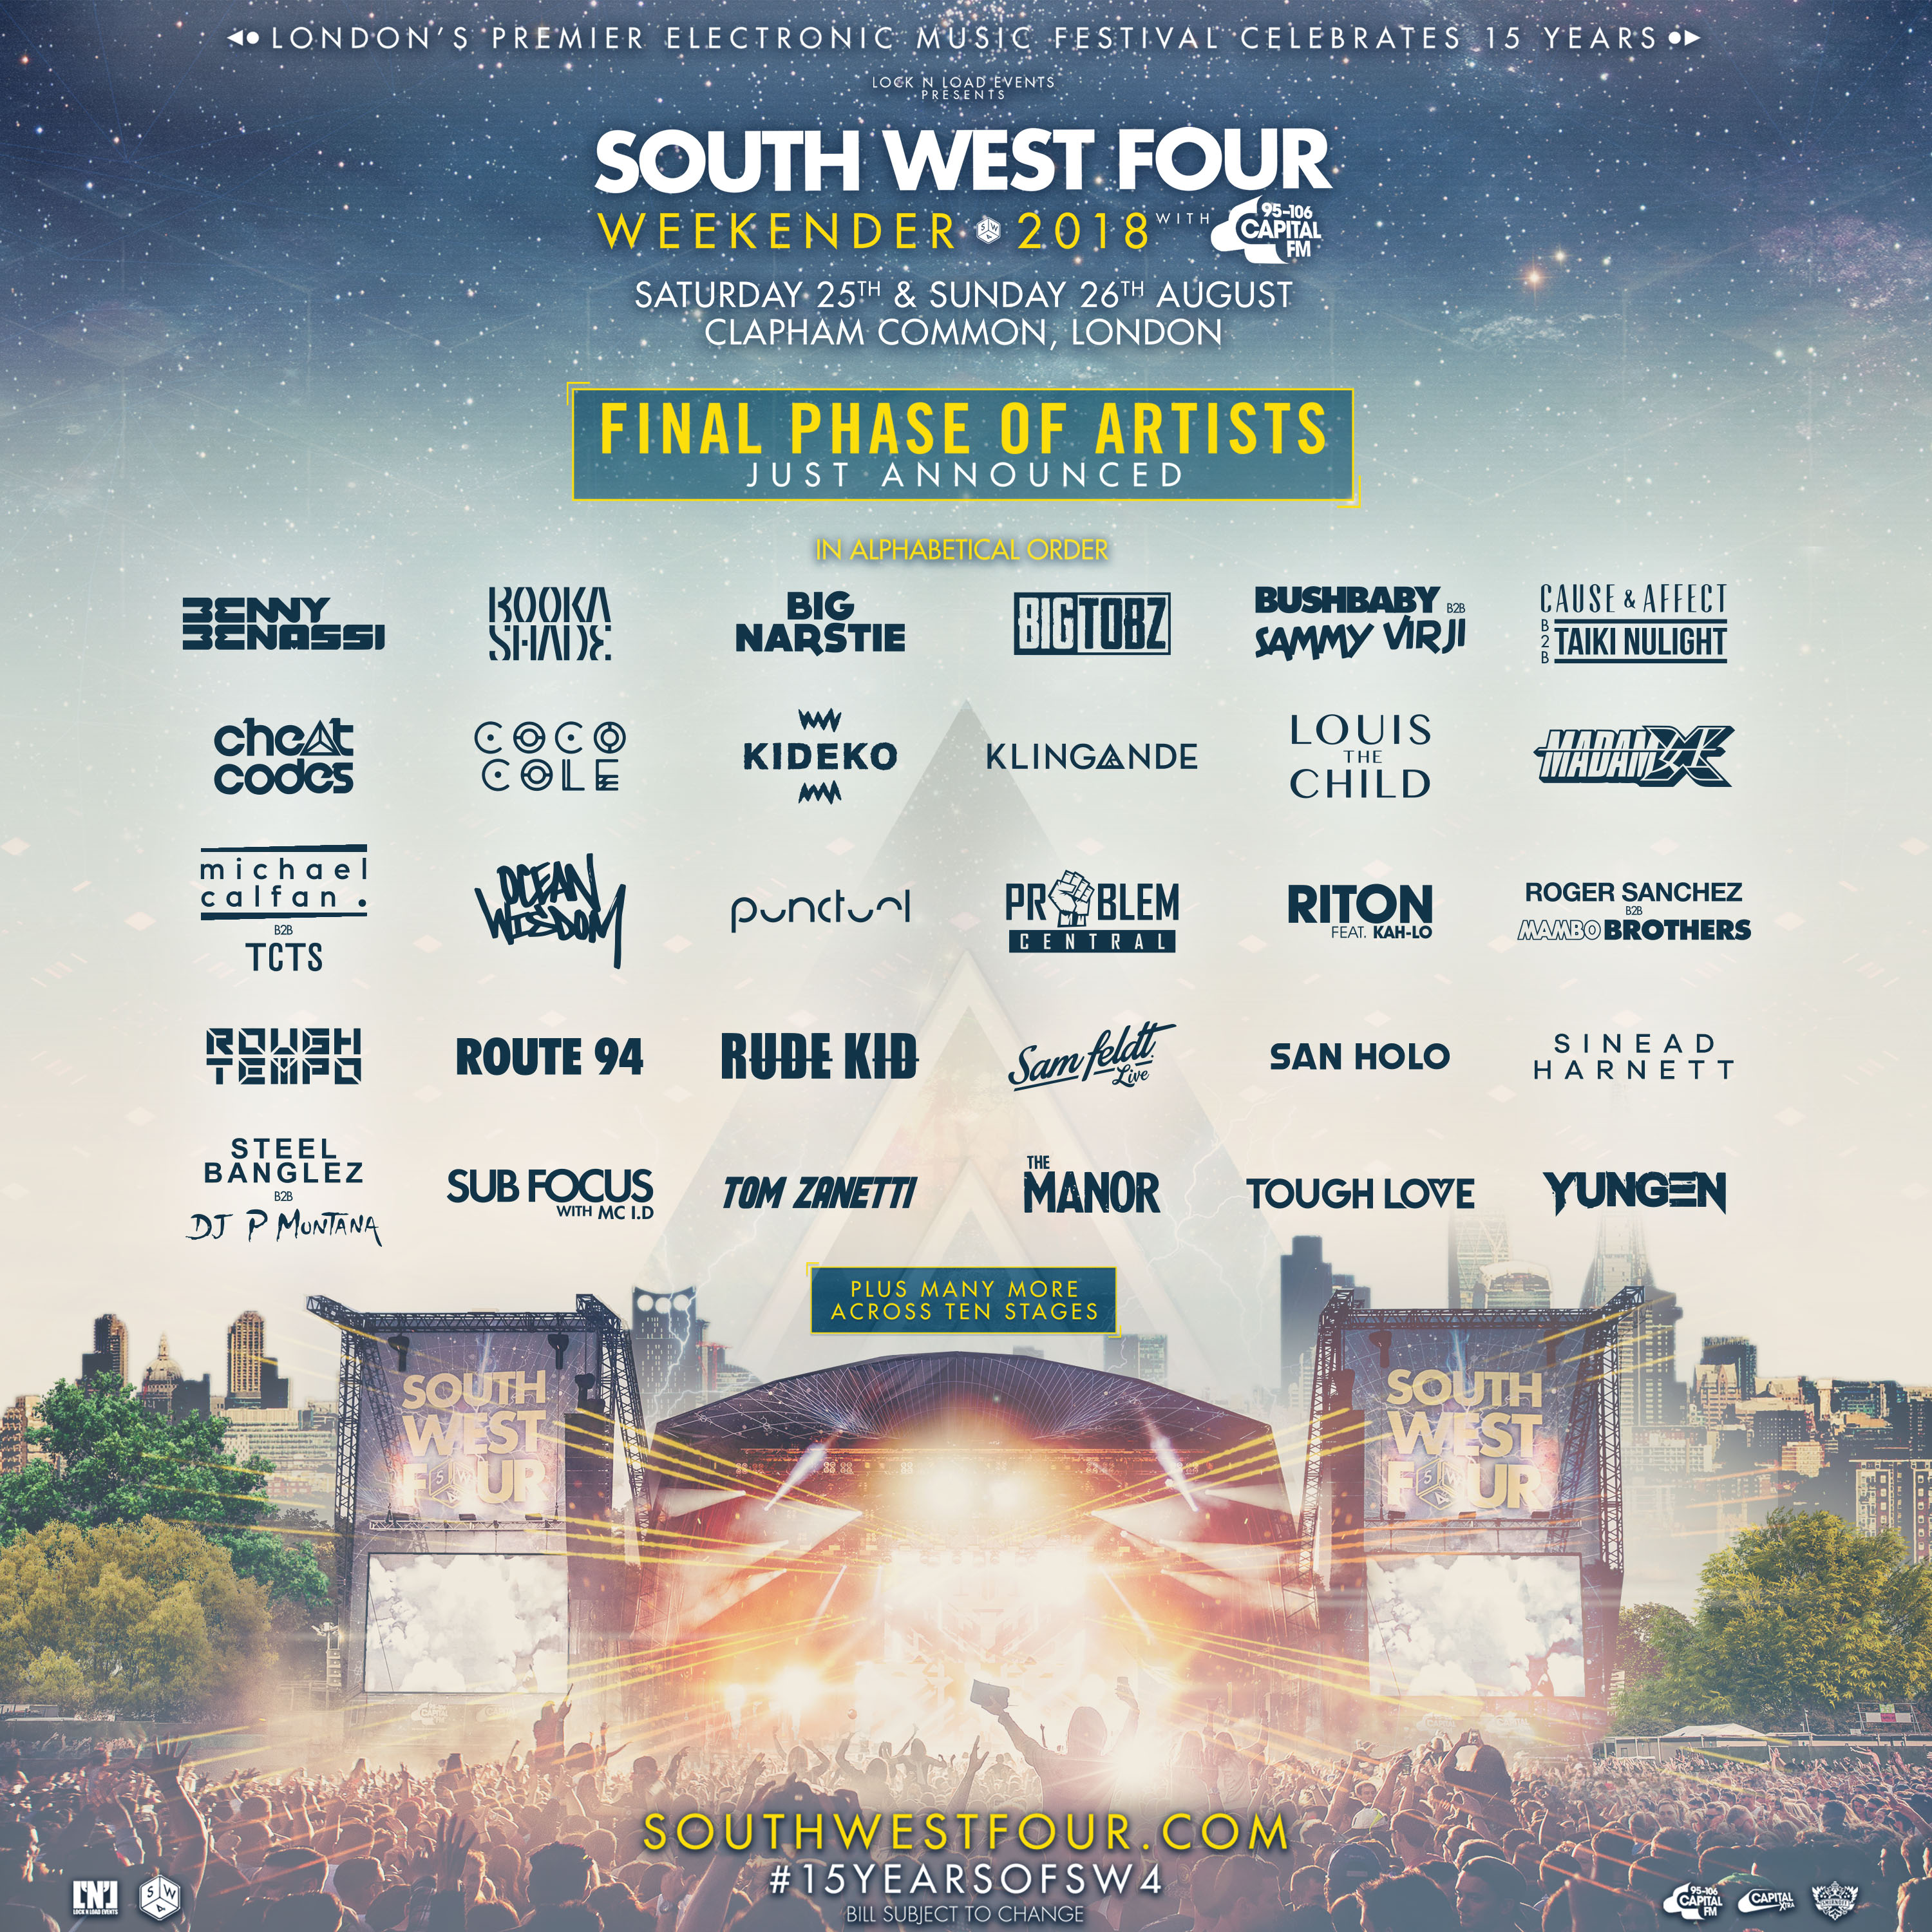 South West Four 2018 Line Up Additions